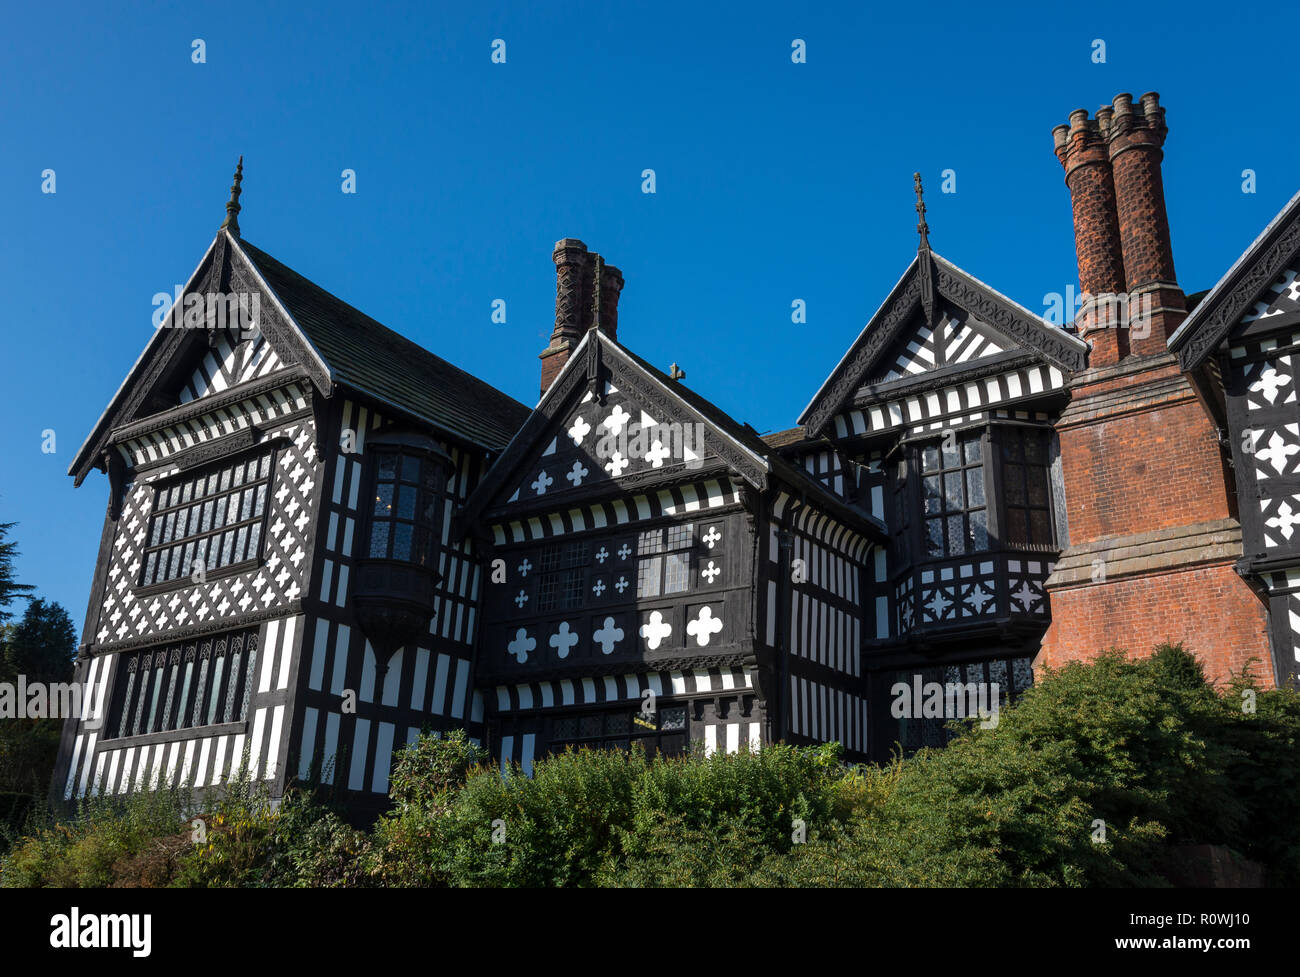 Bramhall Hall, a timber framed tudor house near Stockport, Greater Manchester, England. - Stock Image